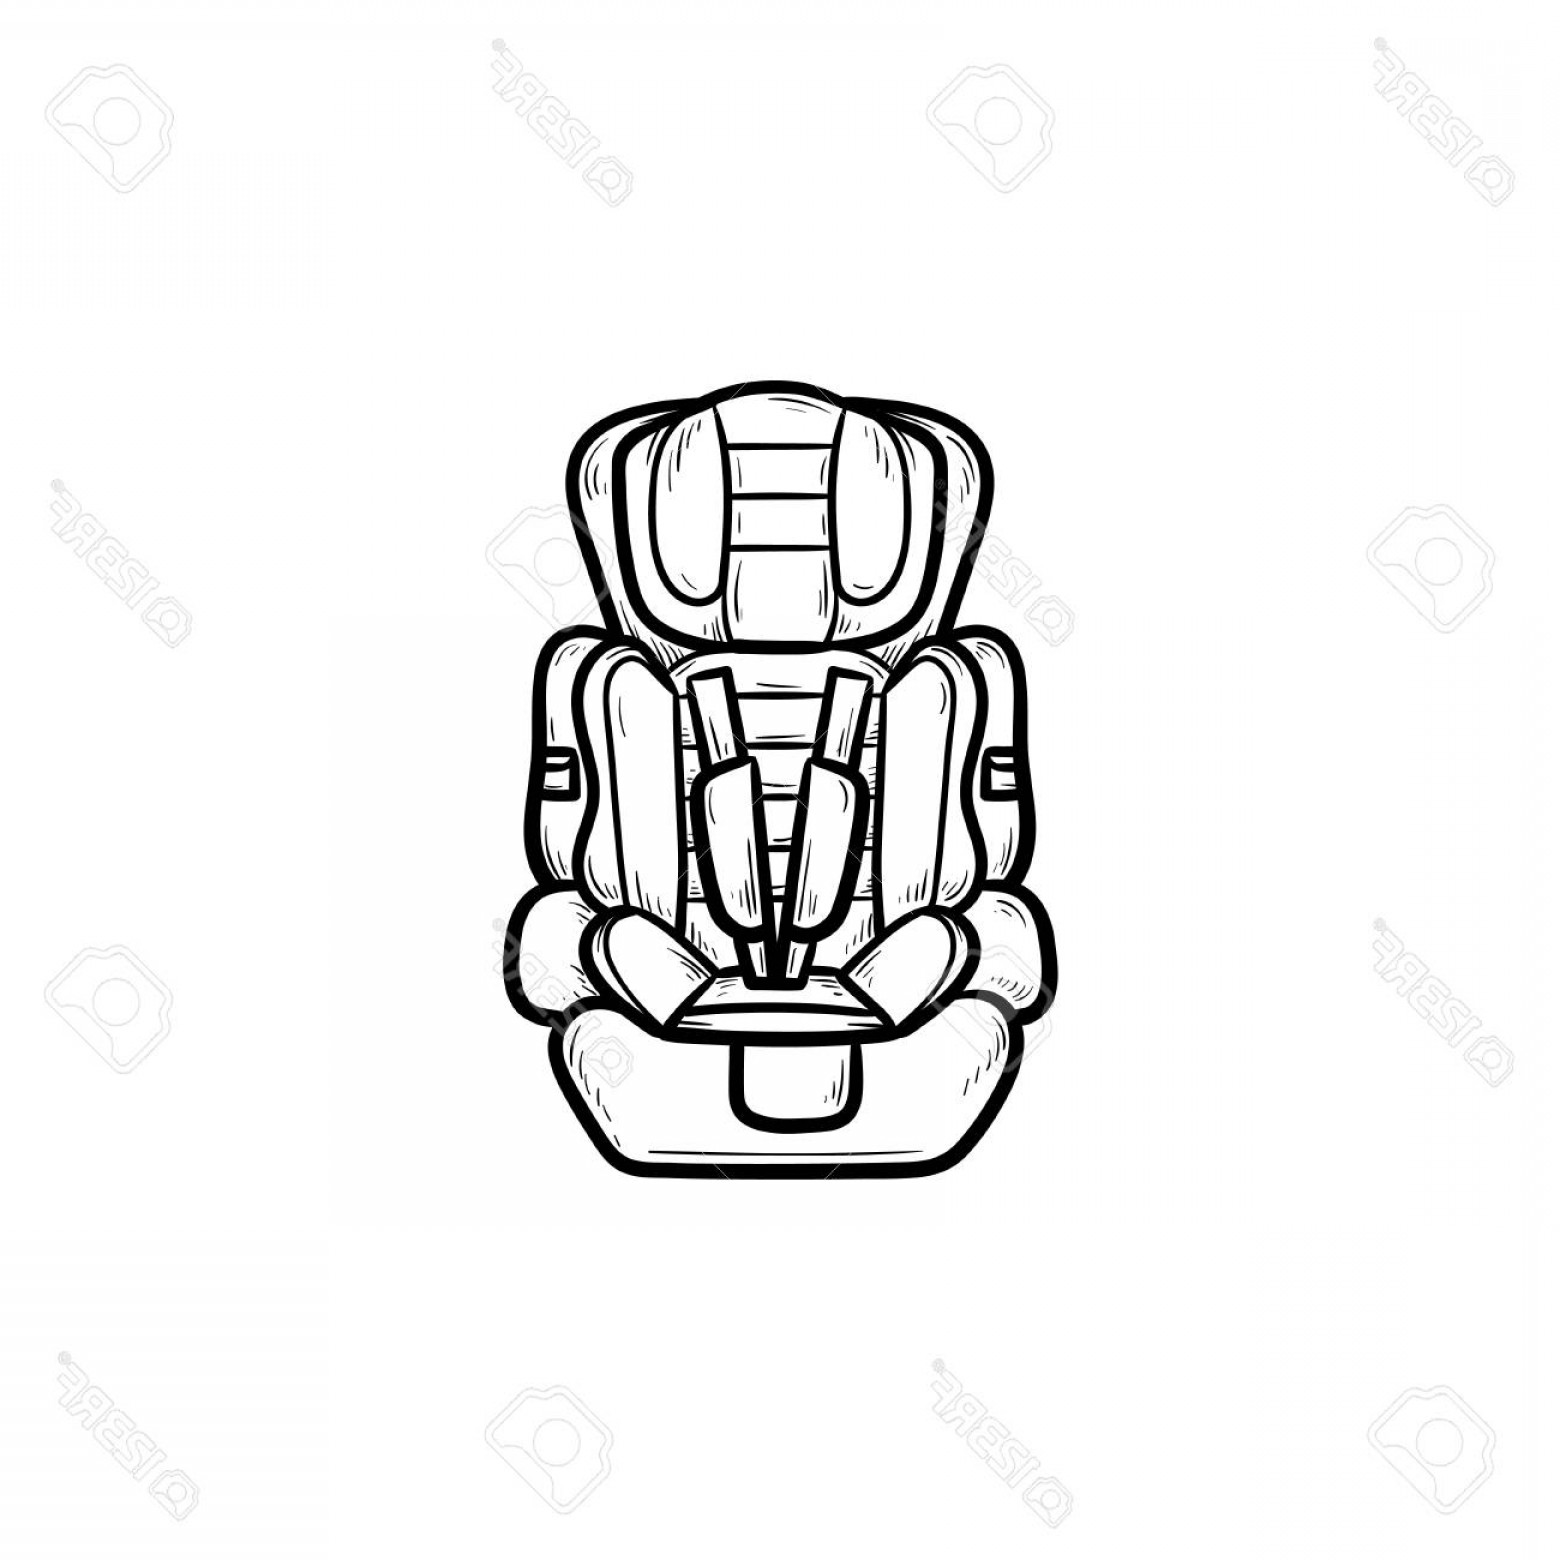 Vector Baby Seat: Photostock Vector Baby Car Seat Hand Drawn Outline Doodle Icon Child Safety And Transportation Protect Kid Trip Concep